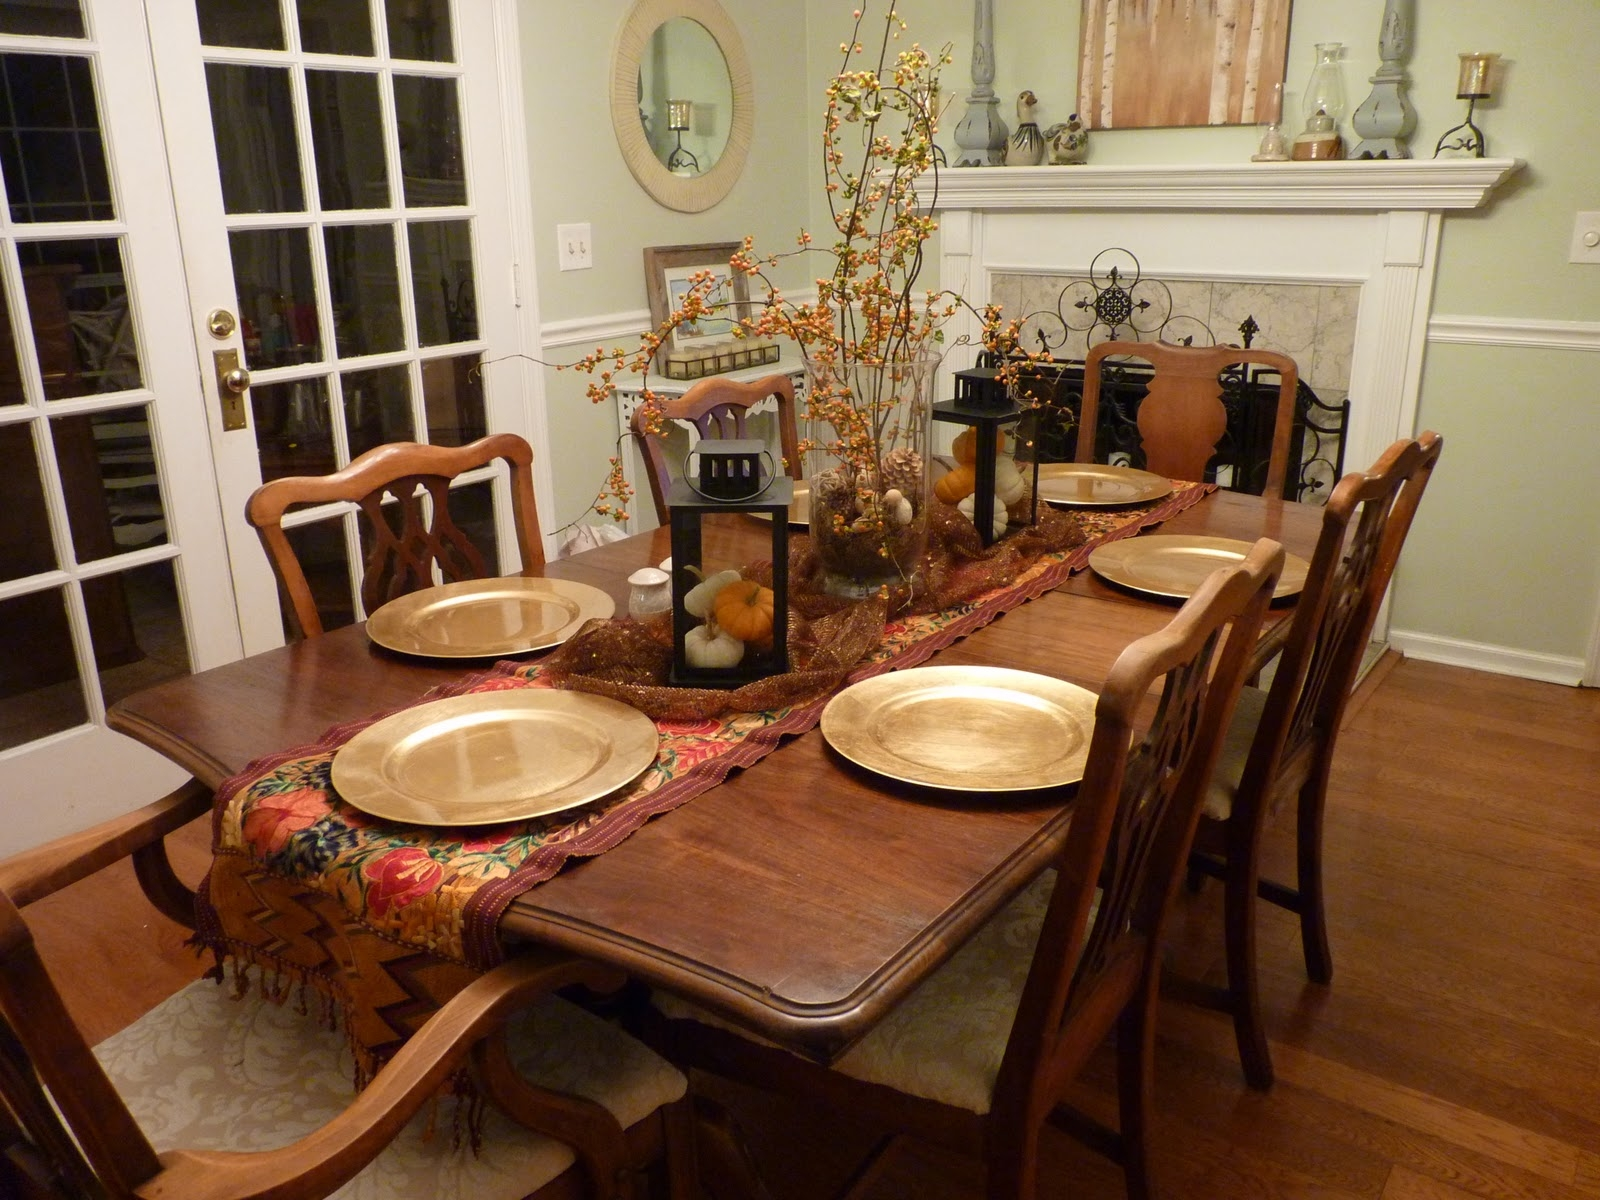 Kitchen Table Top Decor Ideas